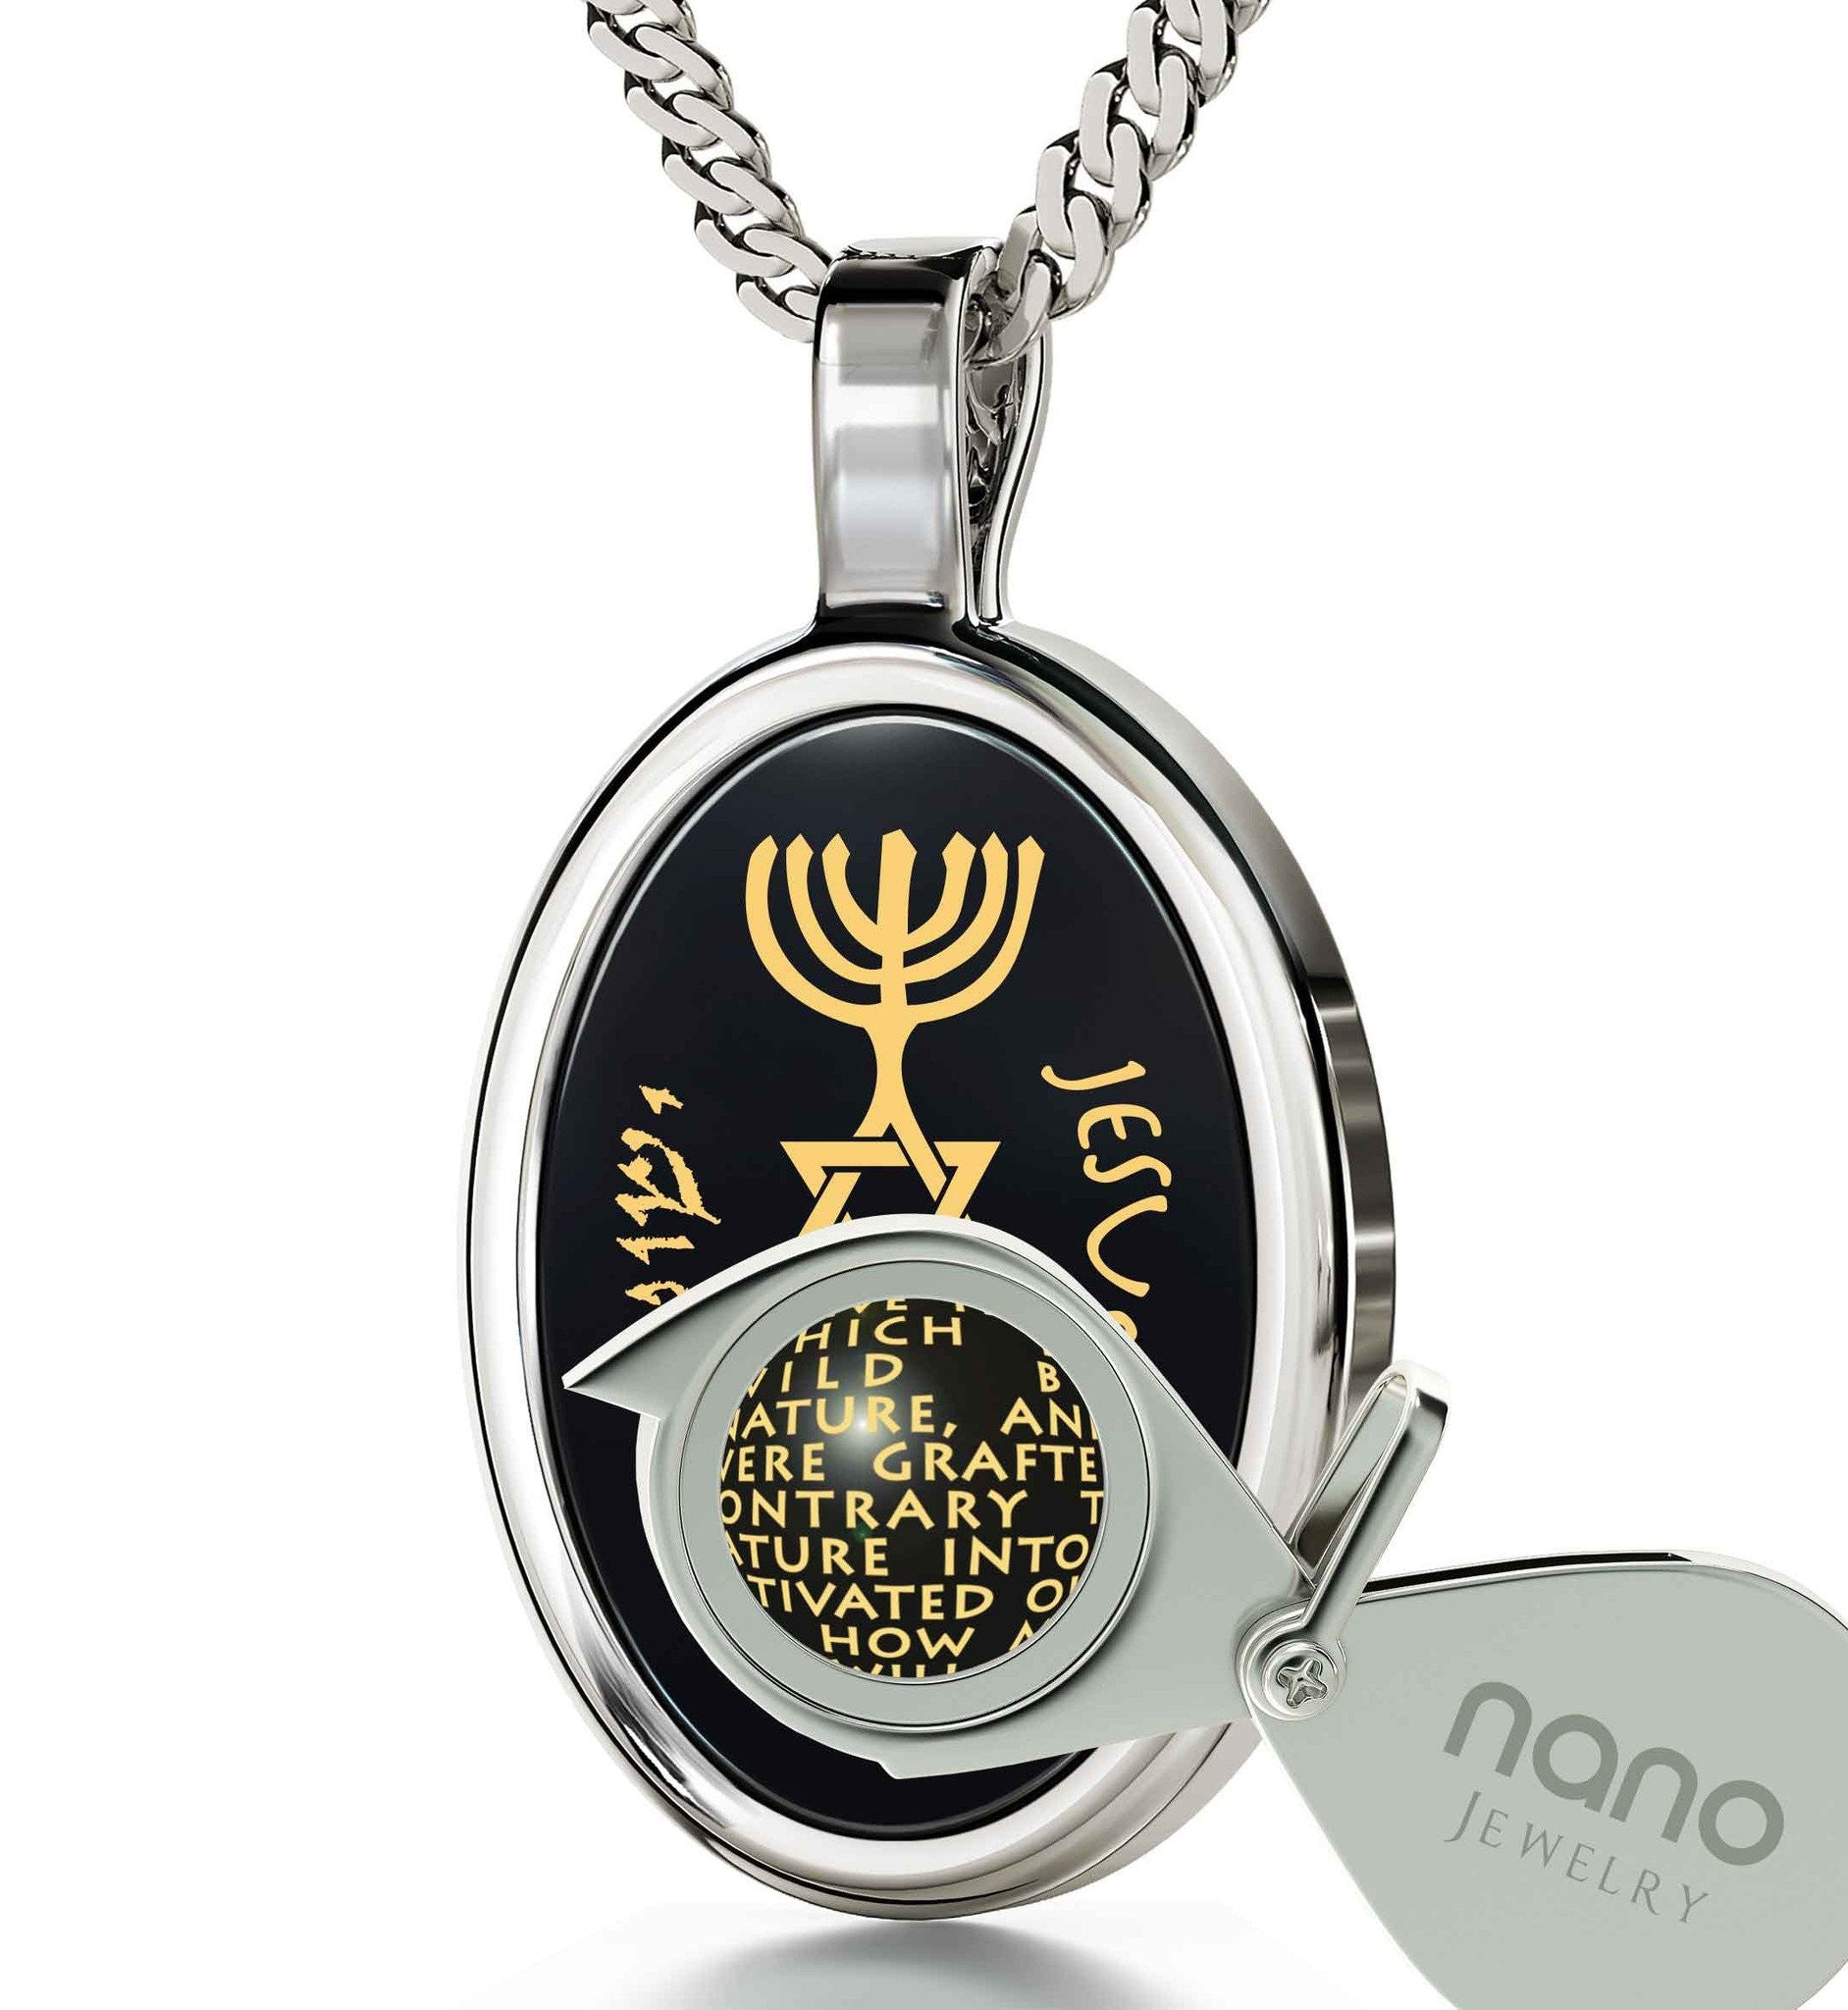 """Messianic Jewelry With Romans 11:24-27 Written Imprint, Christmas Present Ideas for Best Friend, Christian Gift Items, Black Stone Necklace """